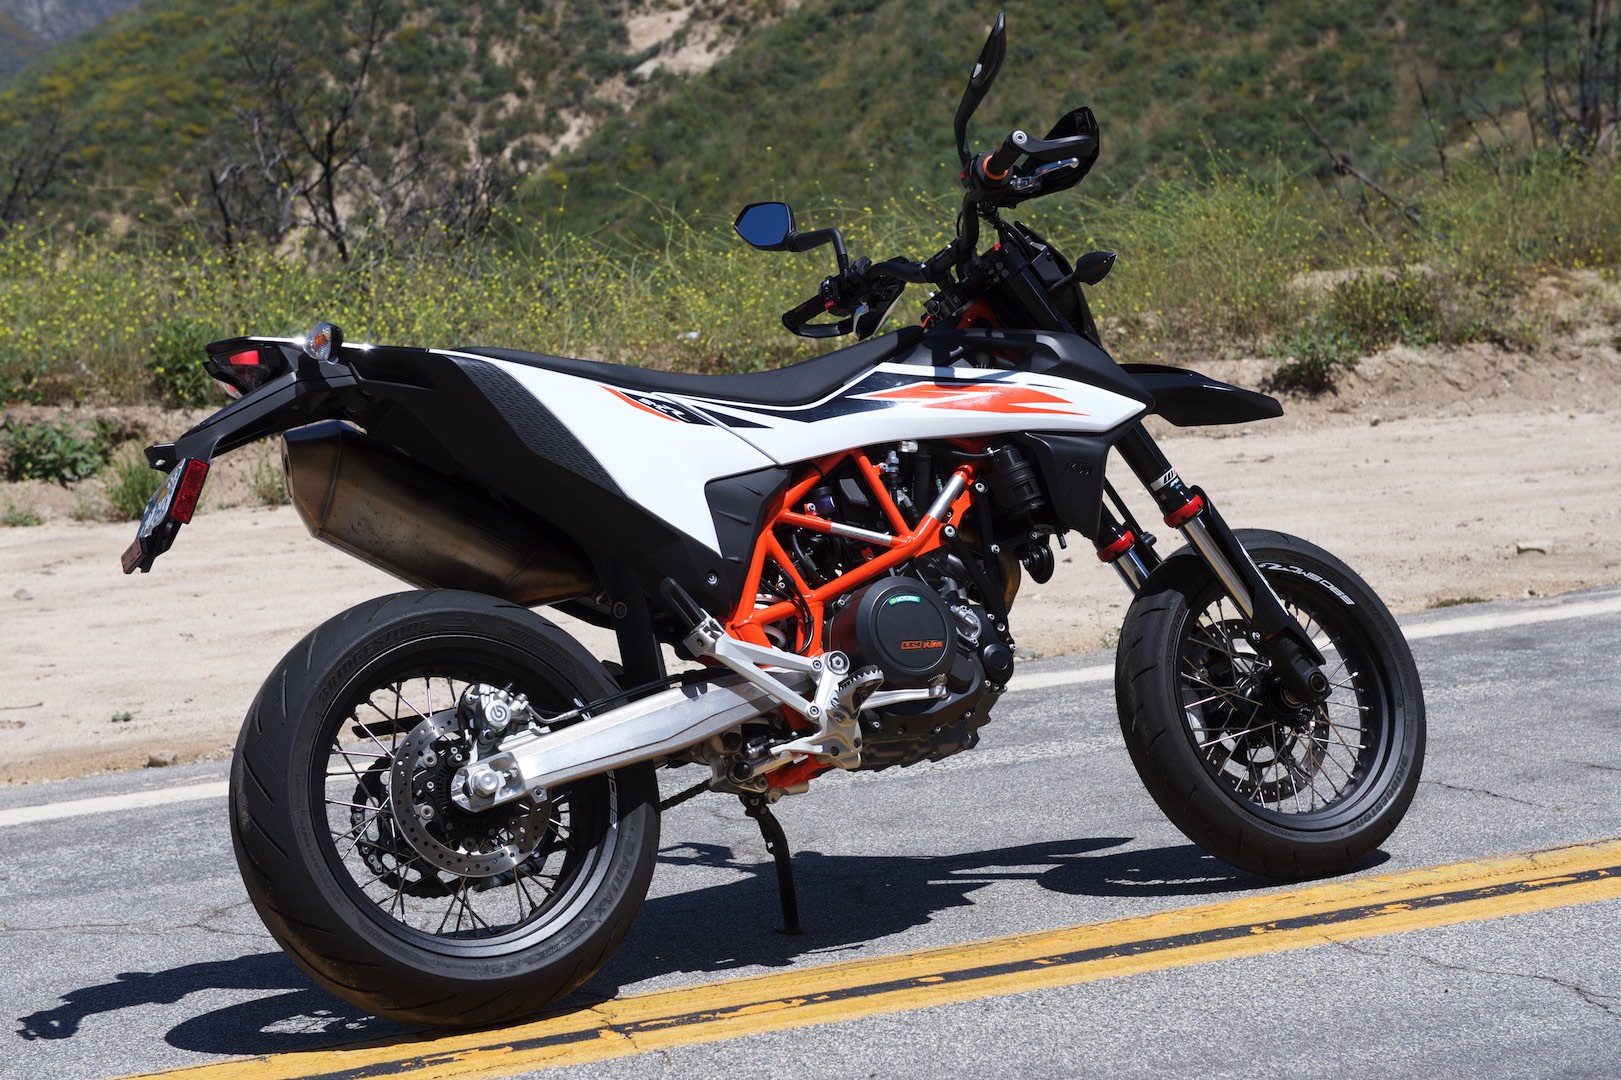 2019 Ktm 690 Smc R Review 17 Fast Facts